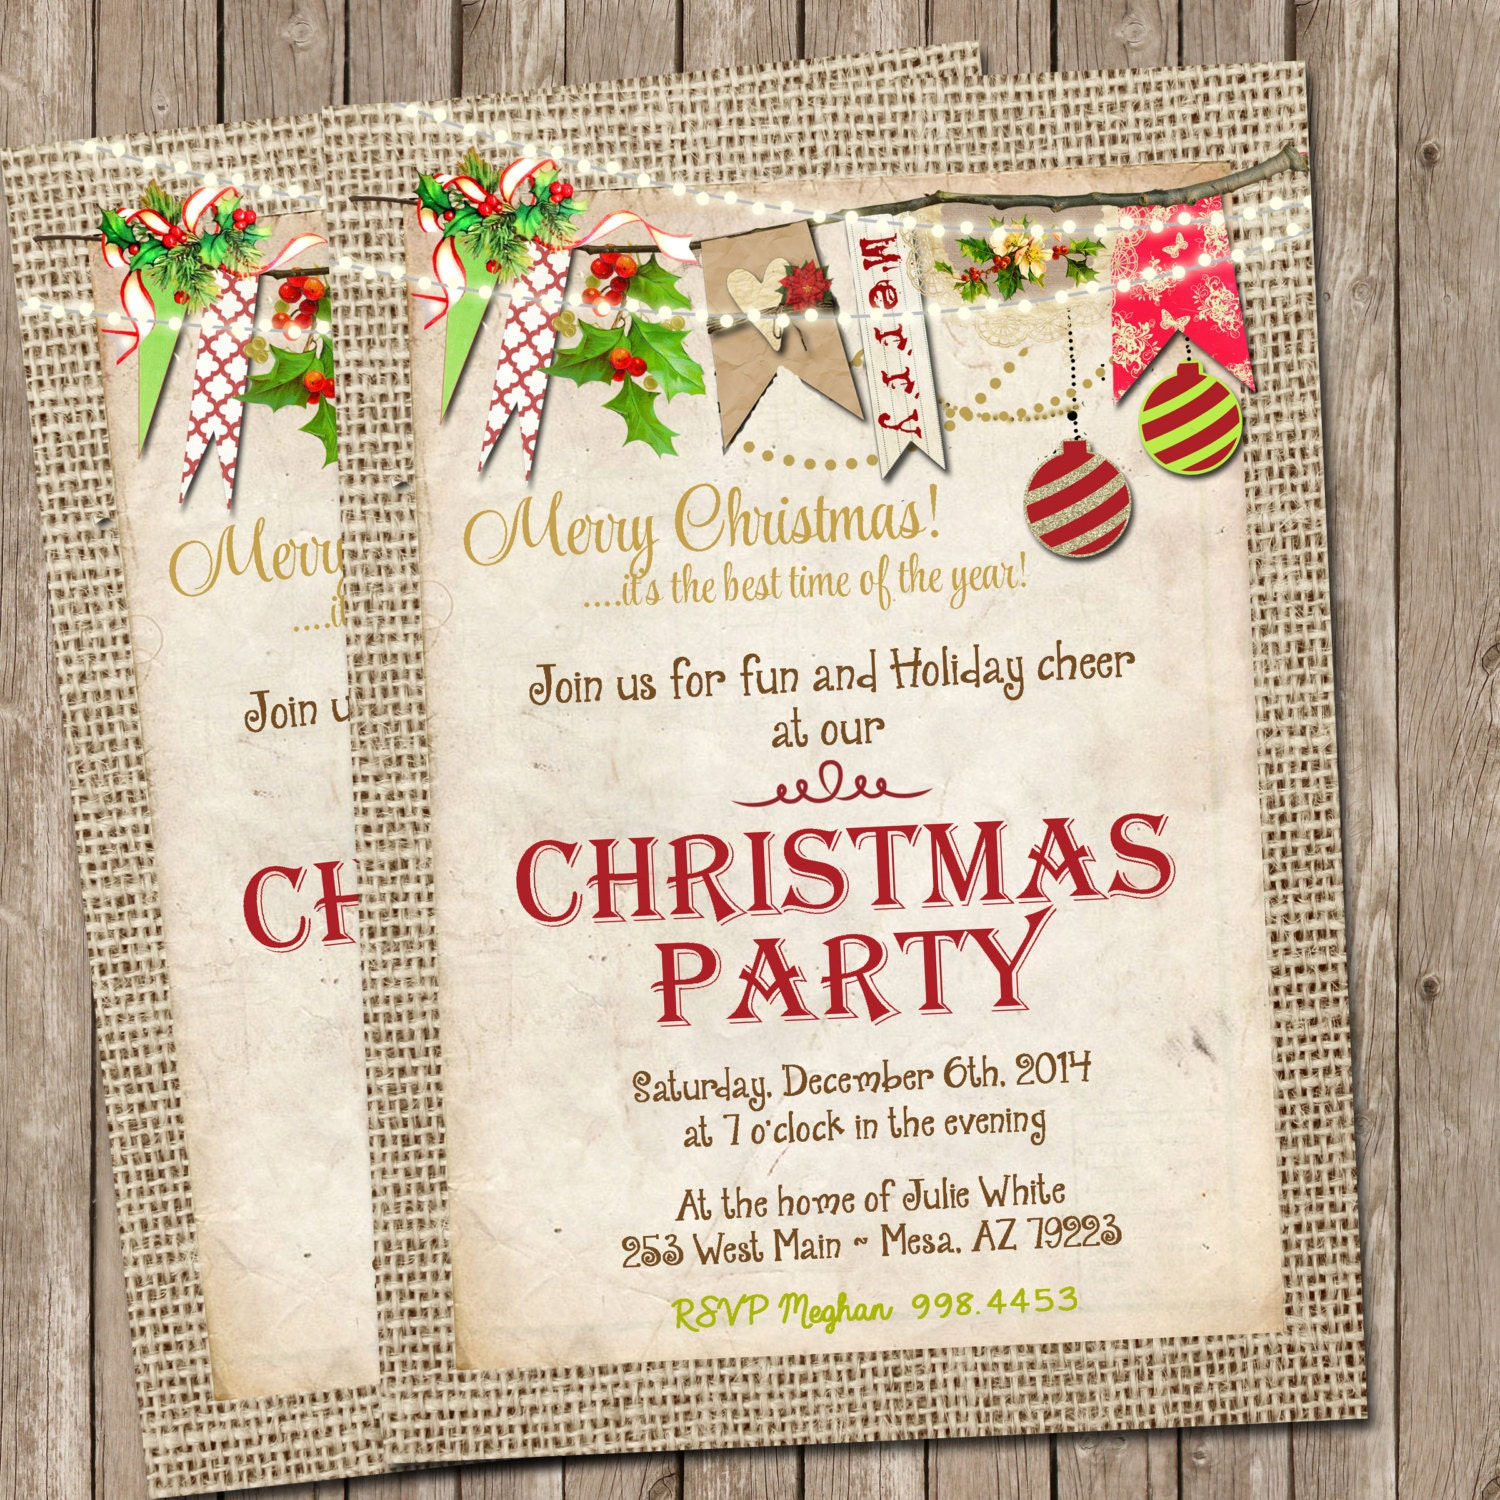 It's just an image of Punchy Free Printable Christmas Party Invitations